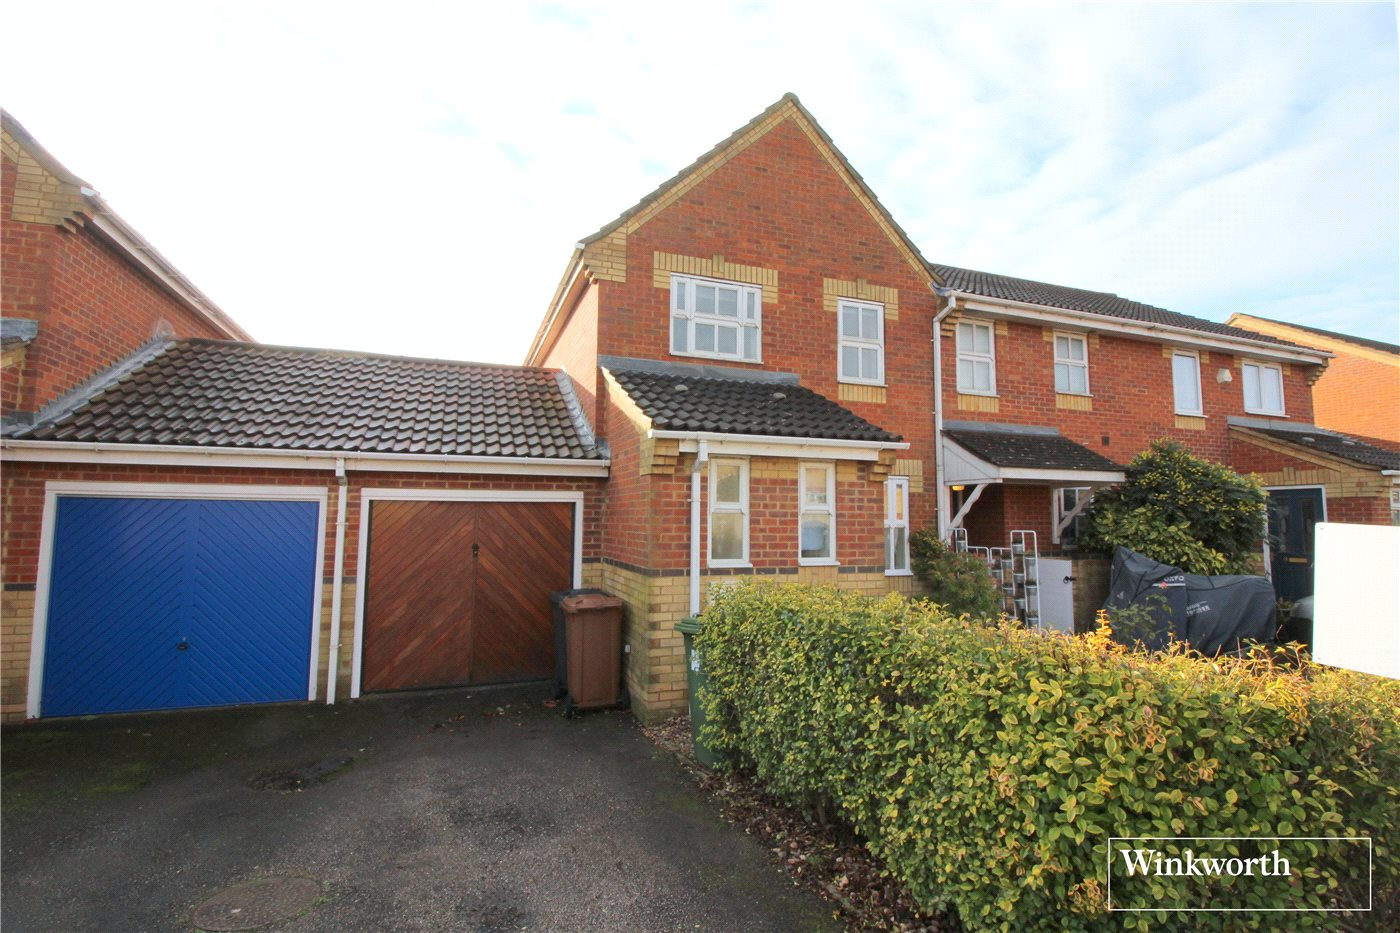 3 Bedrooms Terraced House for sale in Rutherford Close, Borehamwood, Hertfordshire, WD6